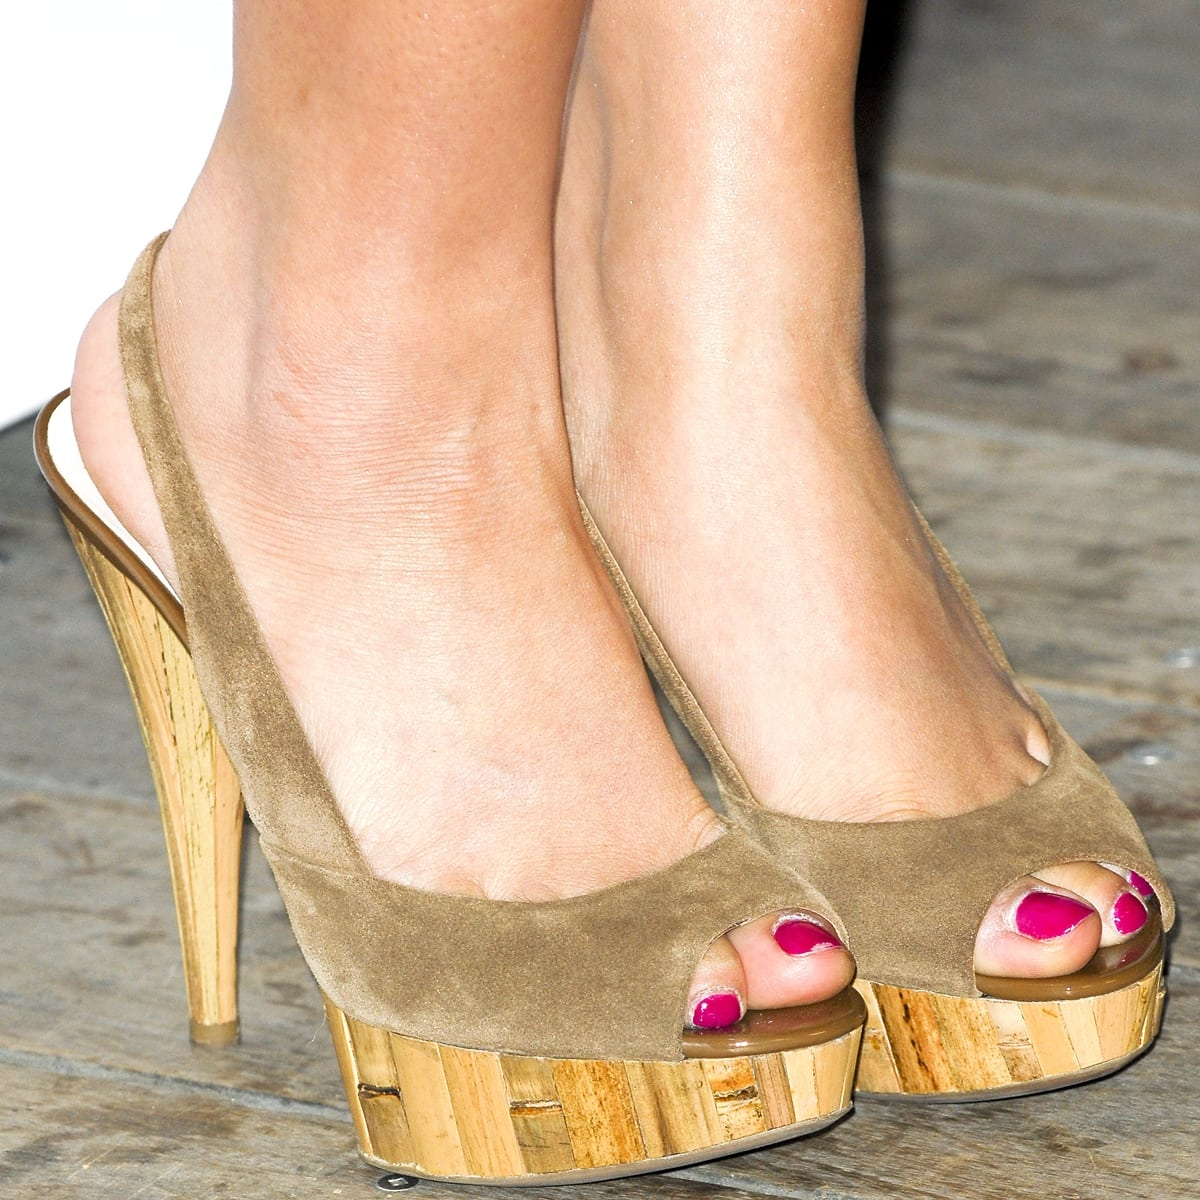 Brenda Song shows off her size 6 (US) feet in high heels